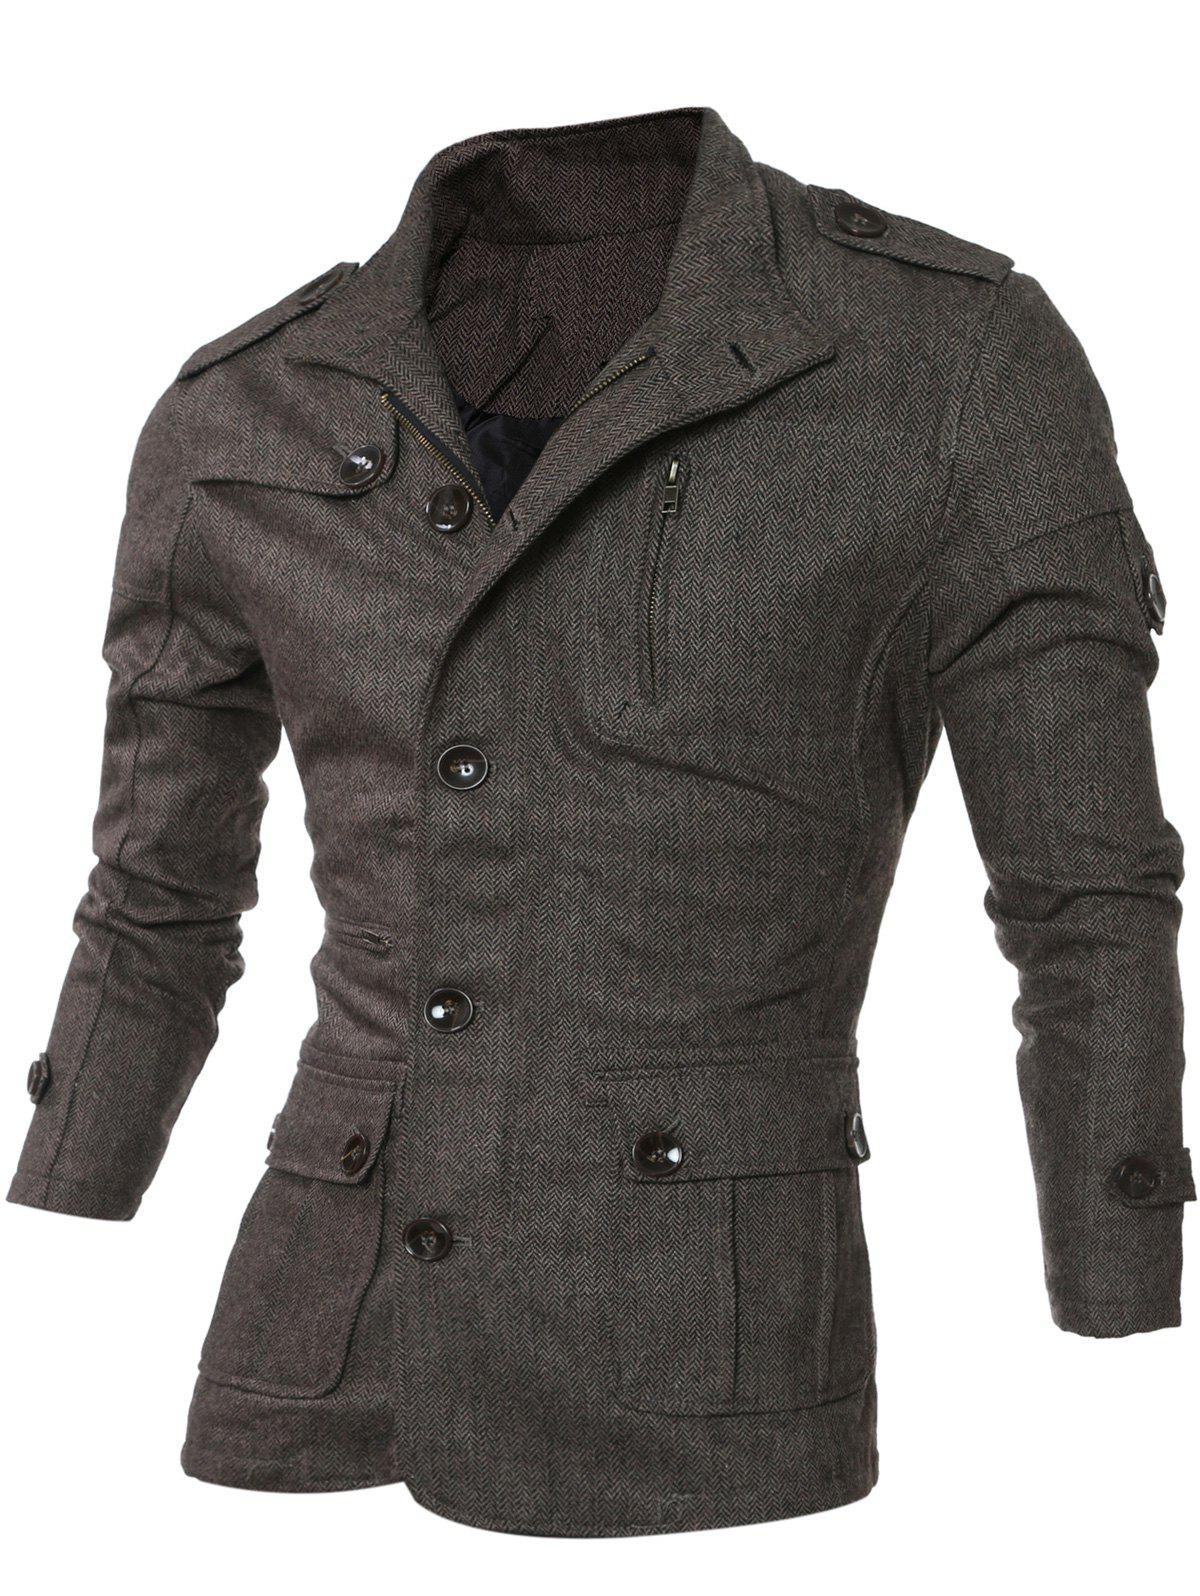 Col rabattu single-breasted Epaulet design poches Veste - café XL